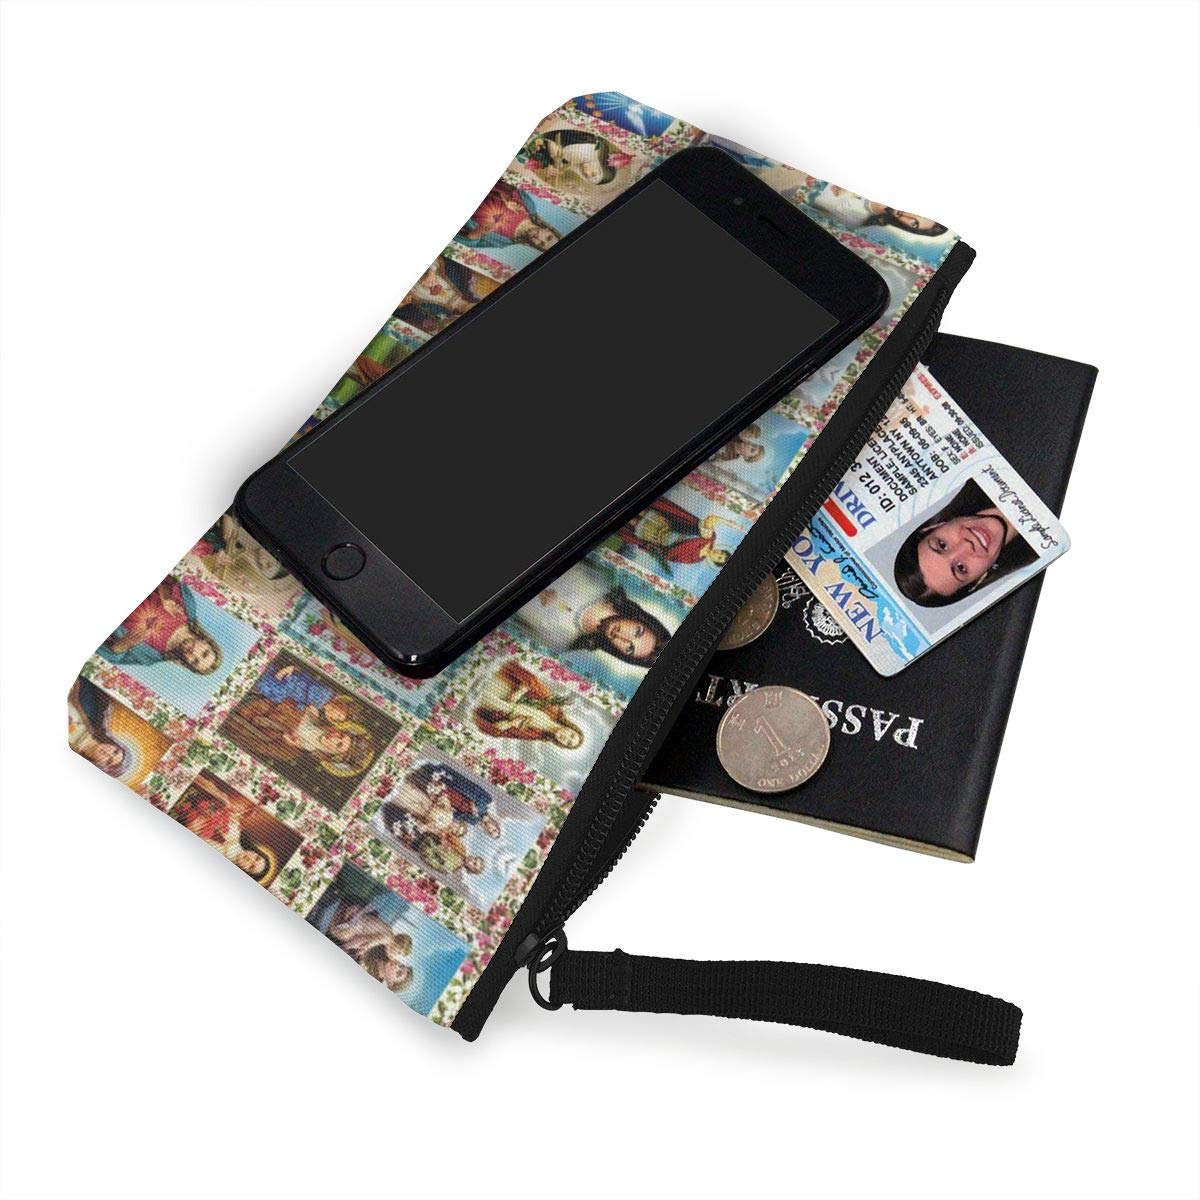 Make Up Bag,Cellphone Bag With Handle Catholic Saints Images Collage Outh Zipper Canvas Coin Purse Wallet